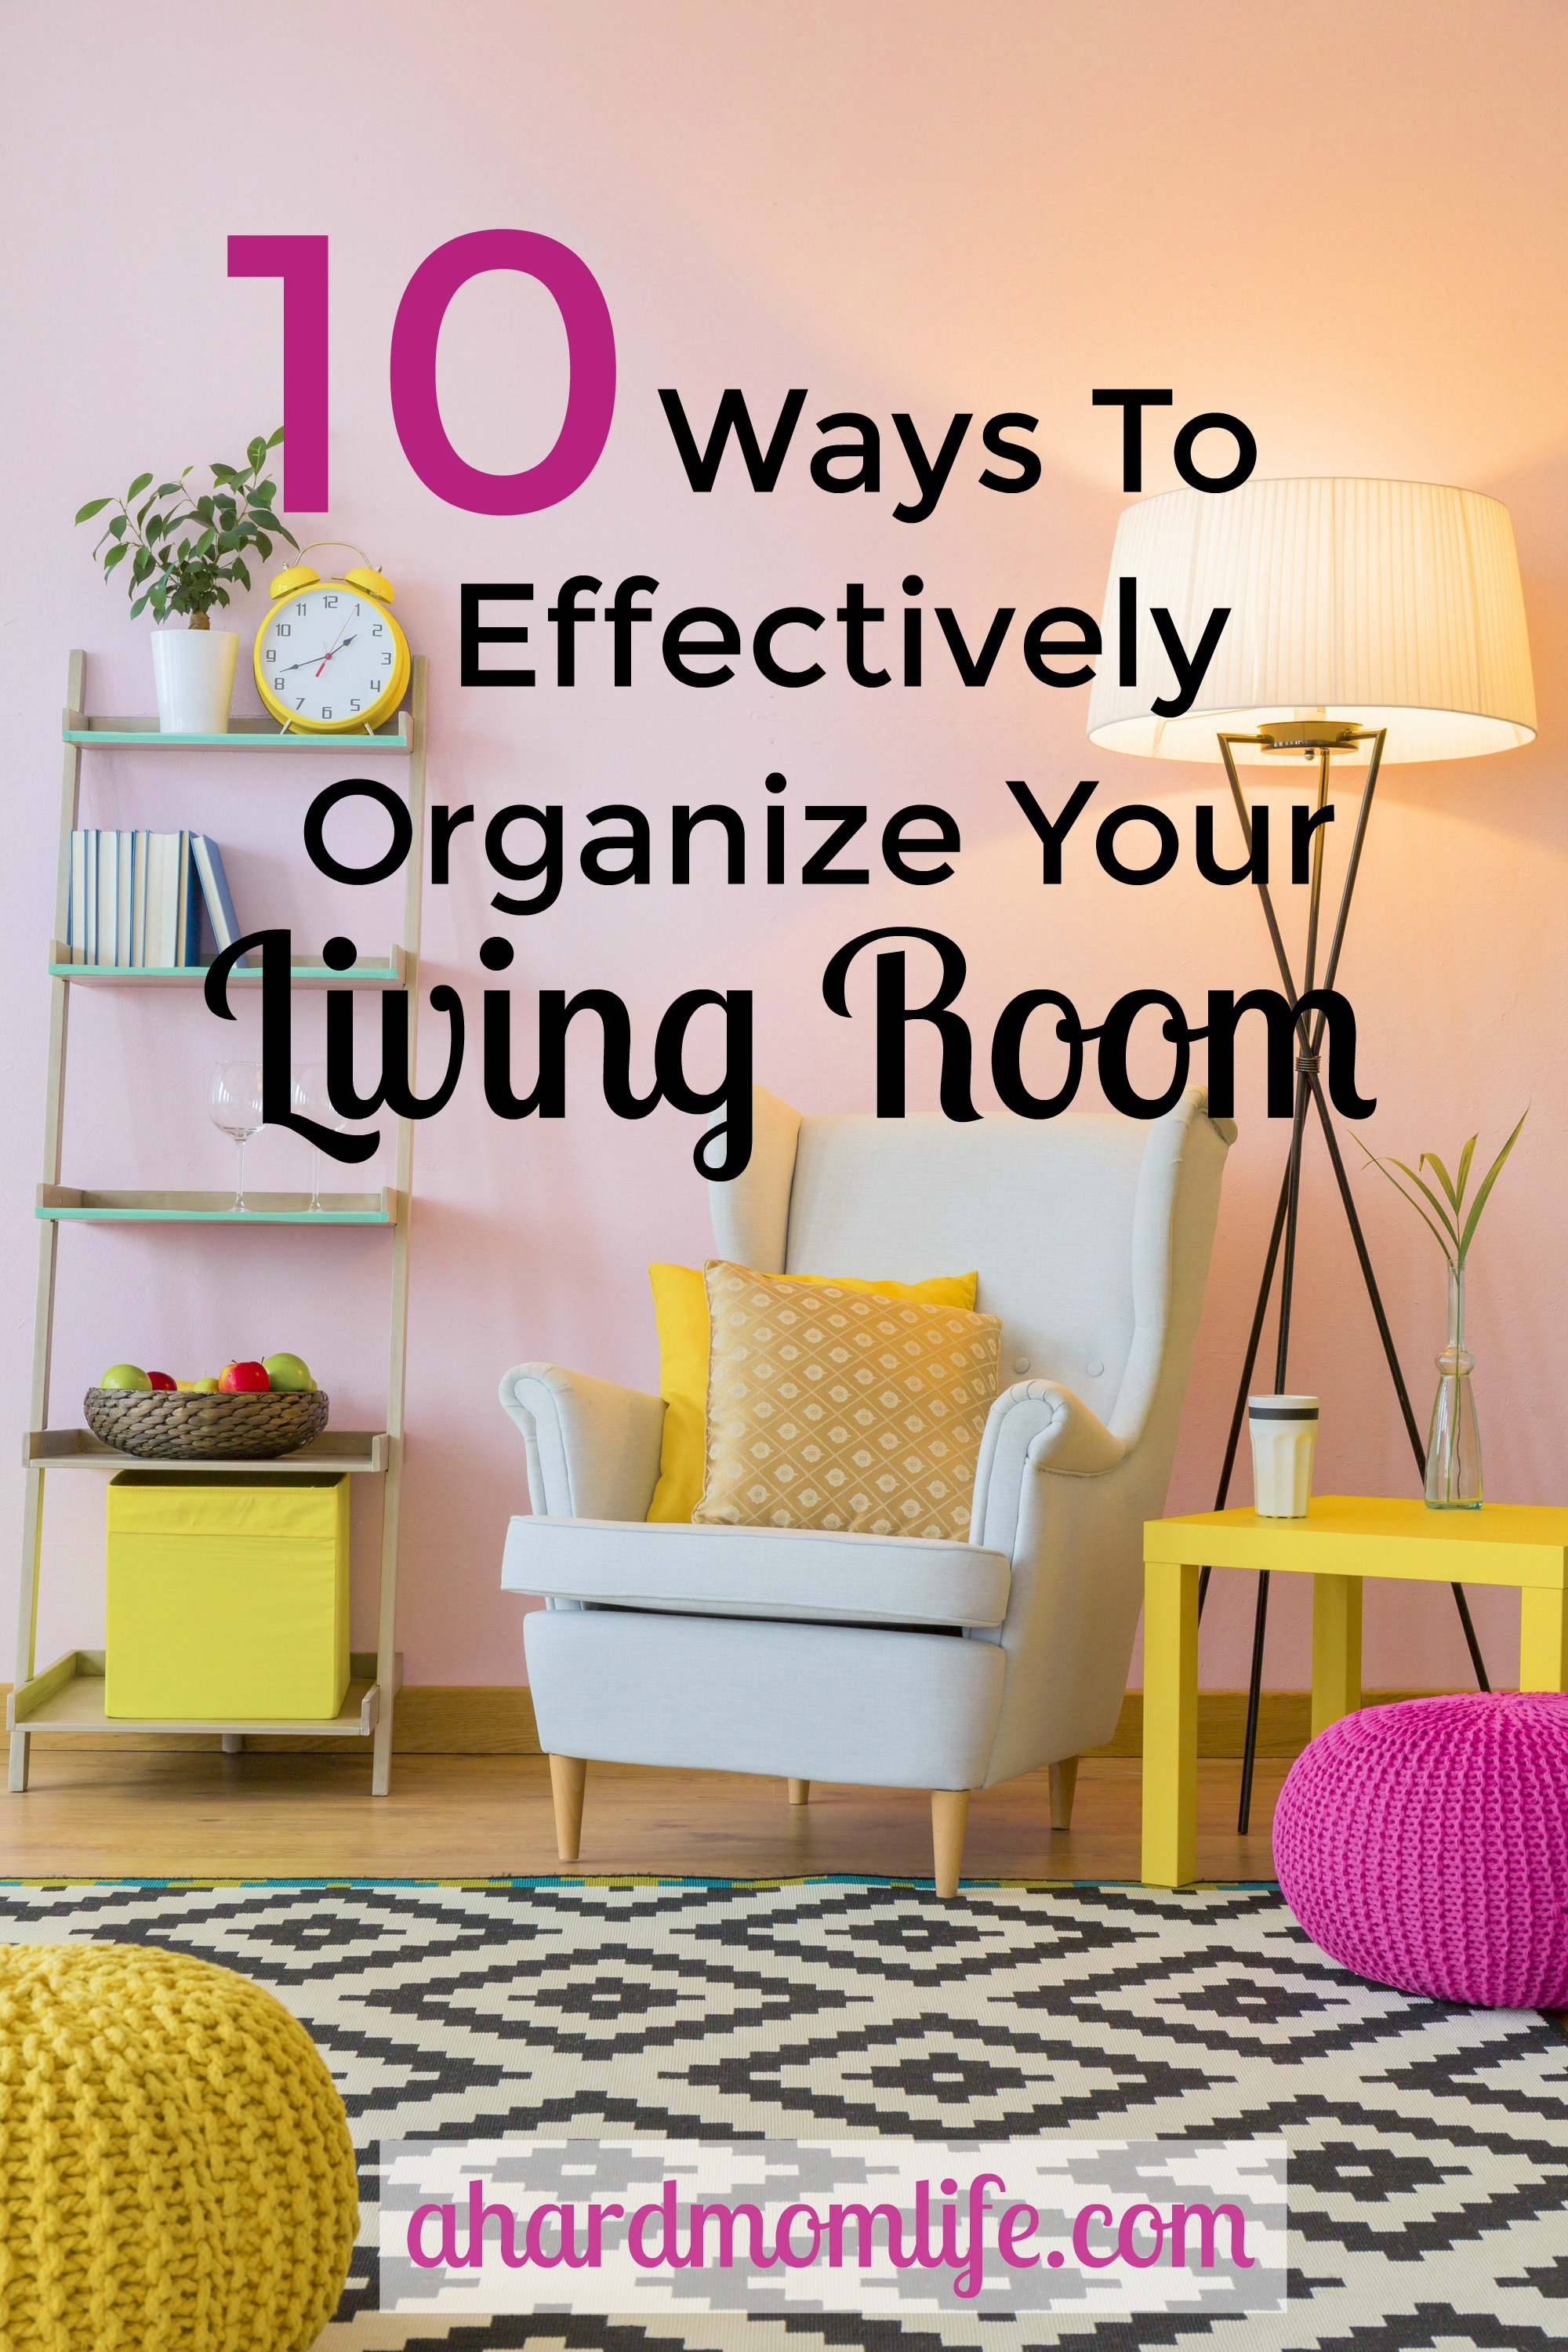 Looking to organize your living room? Here are some great tips to make the most of your space and help cut clutter before it starts.